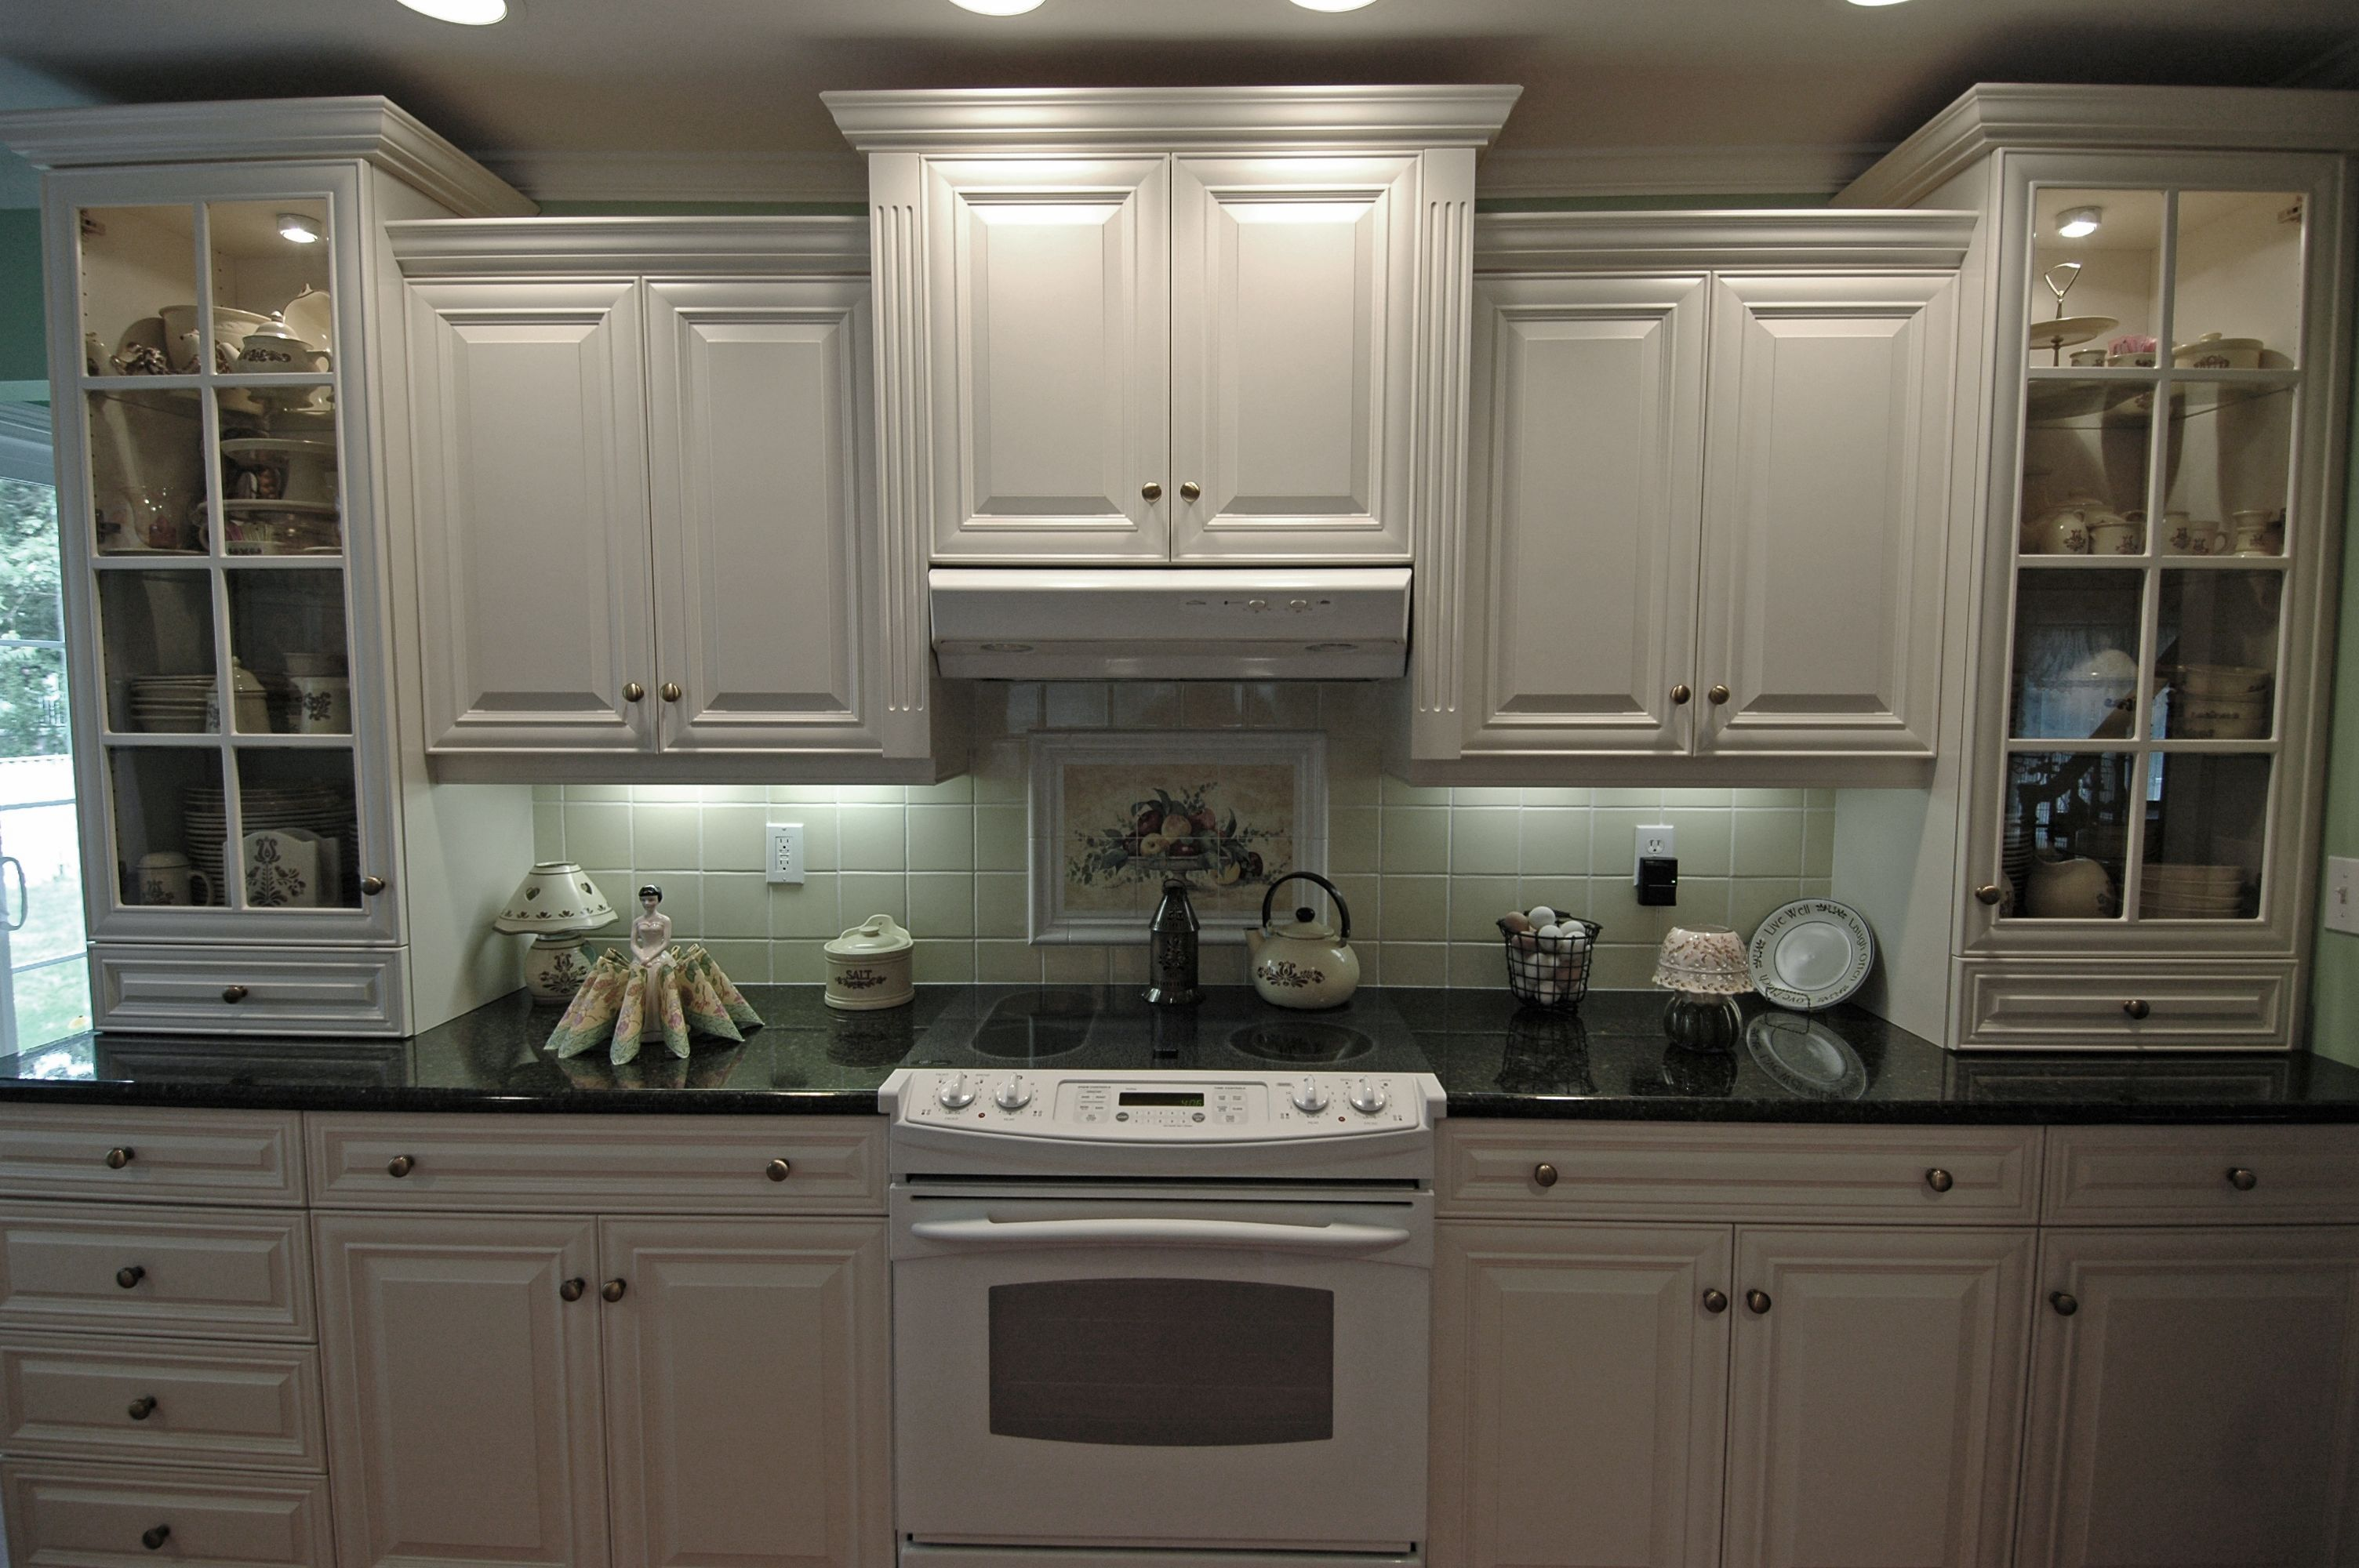 White Thermofoil Kitchen Small Modern Kitchens White Modern Kitchen Modern Kitchen